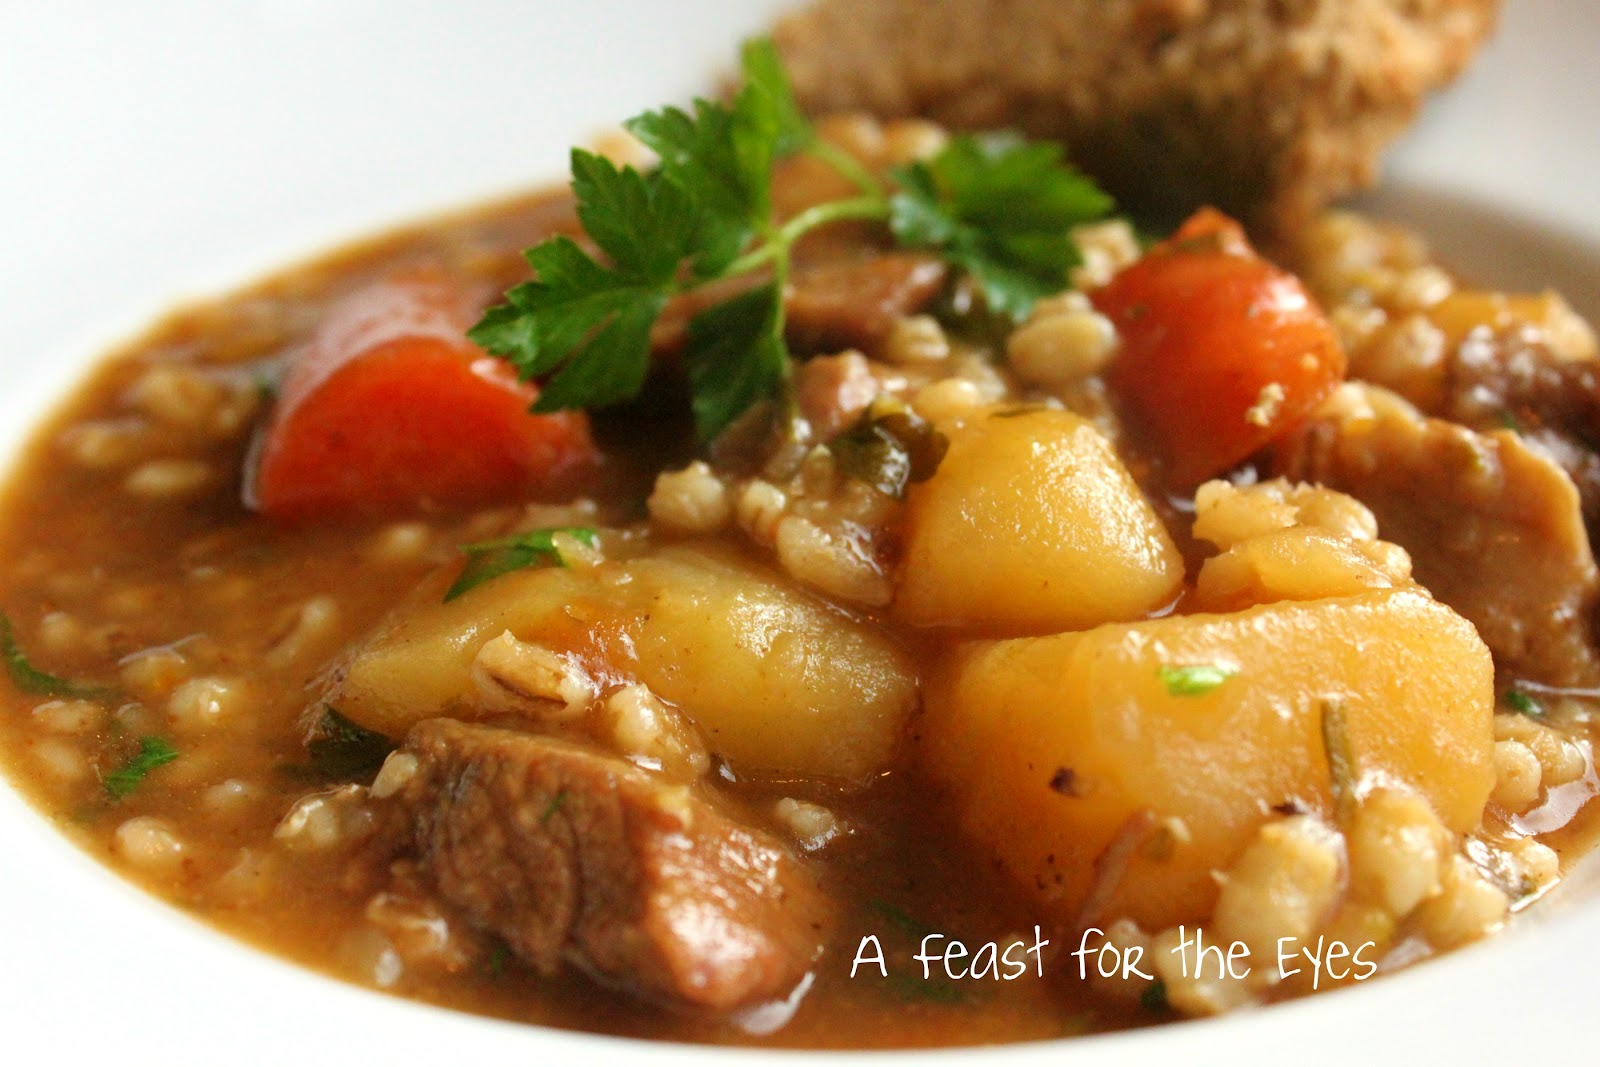 ... Feast for the Eyes: Guinness Irish Lamb Stew & Irish Brown Soda Bread